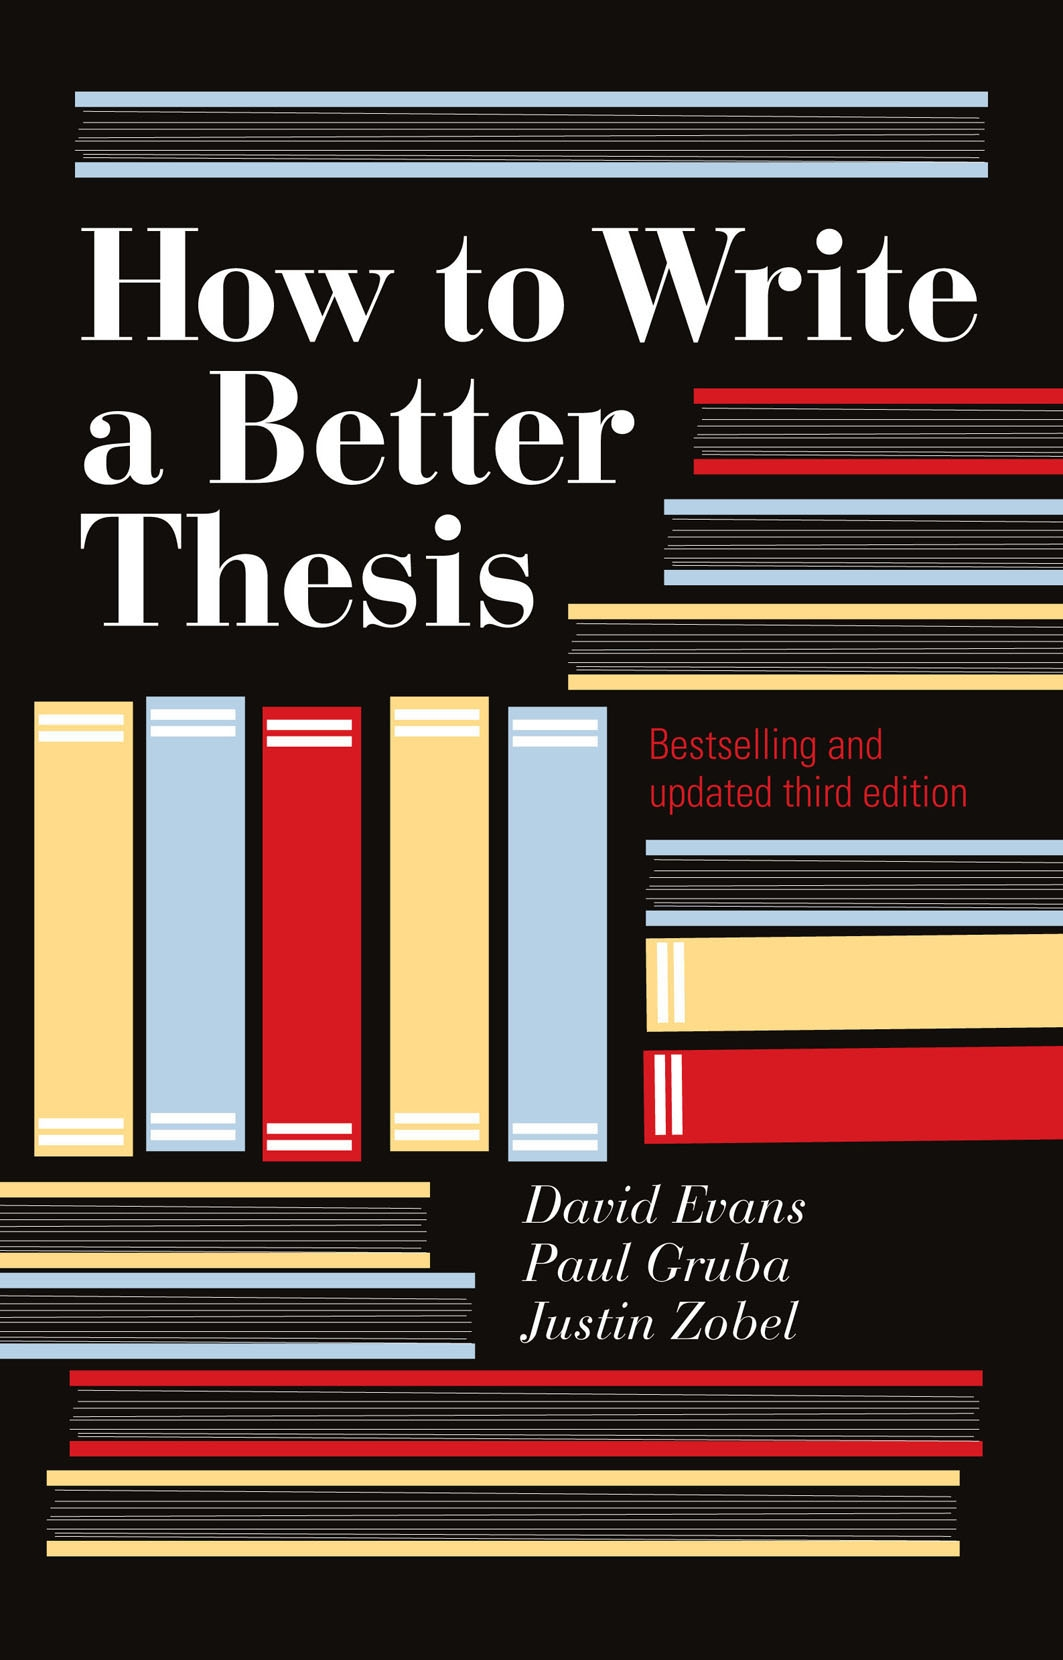 how to write a better thesis How to write a thesis belongs on the bookshelves of students, teachers, writers, and eco fans everywhere already a classic, it would fit nicely between two other classics: strunk and white and the name of the rose.